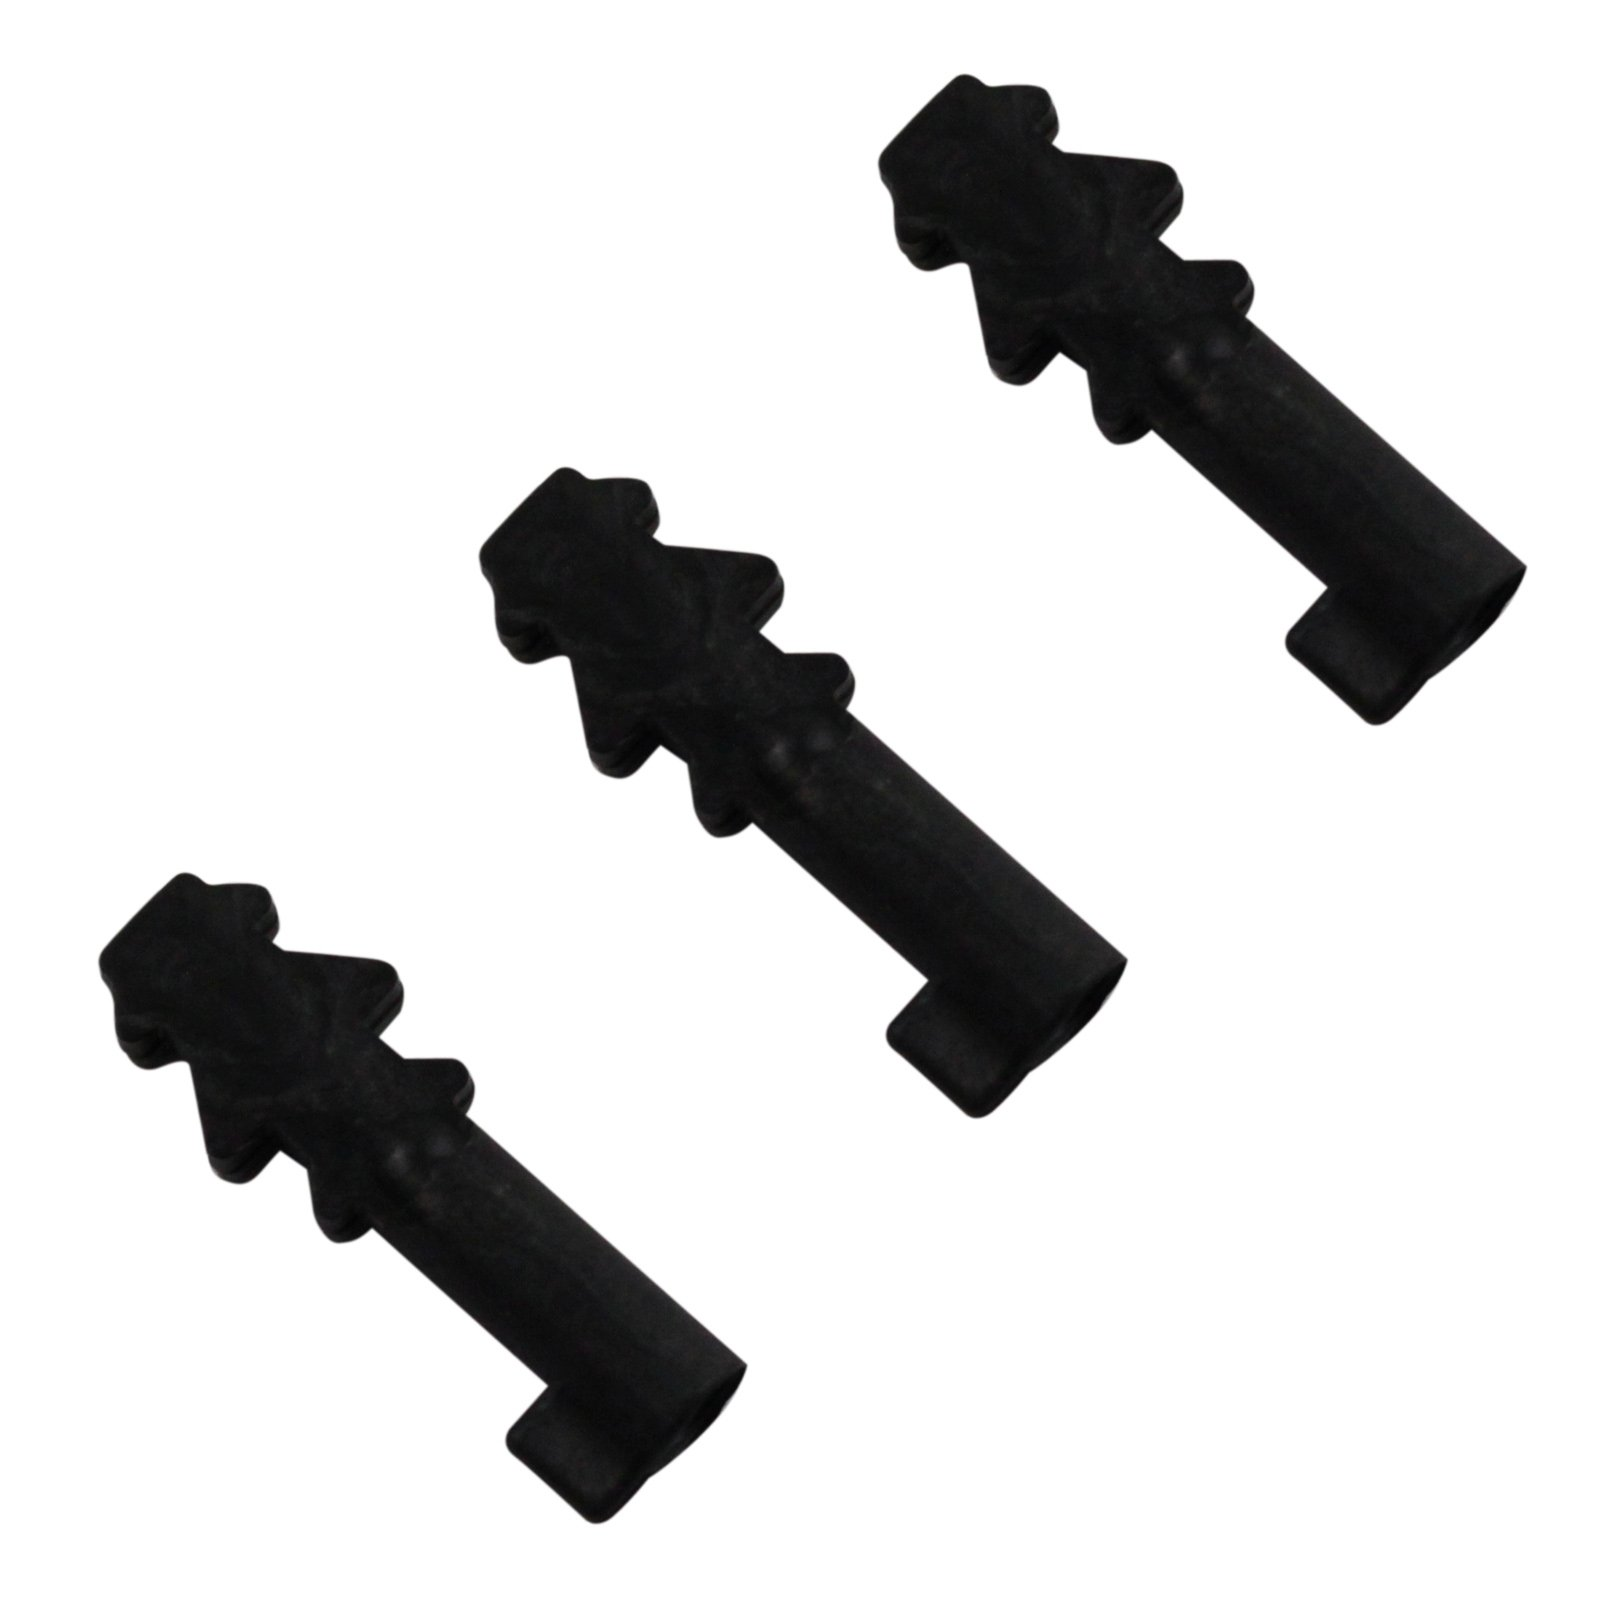 3pk ASR Outdoor Bare Minimum Handcuff Key Non Metallic Escape Tool - Black